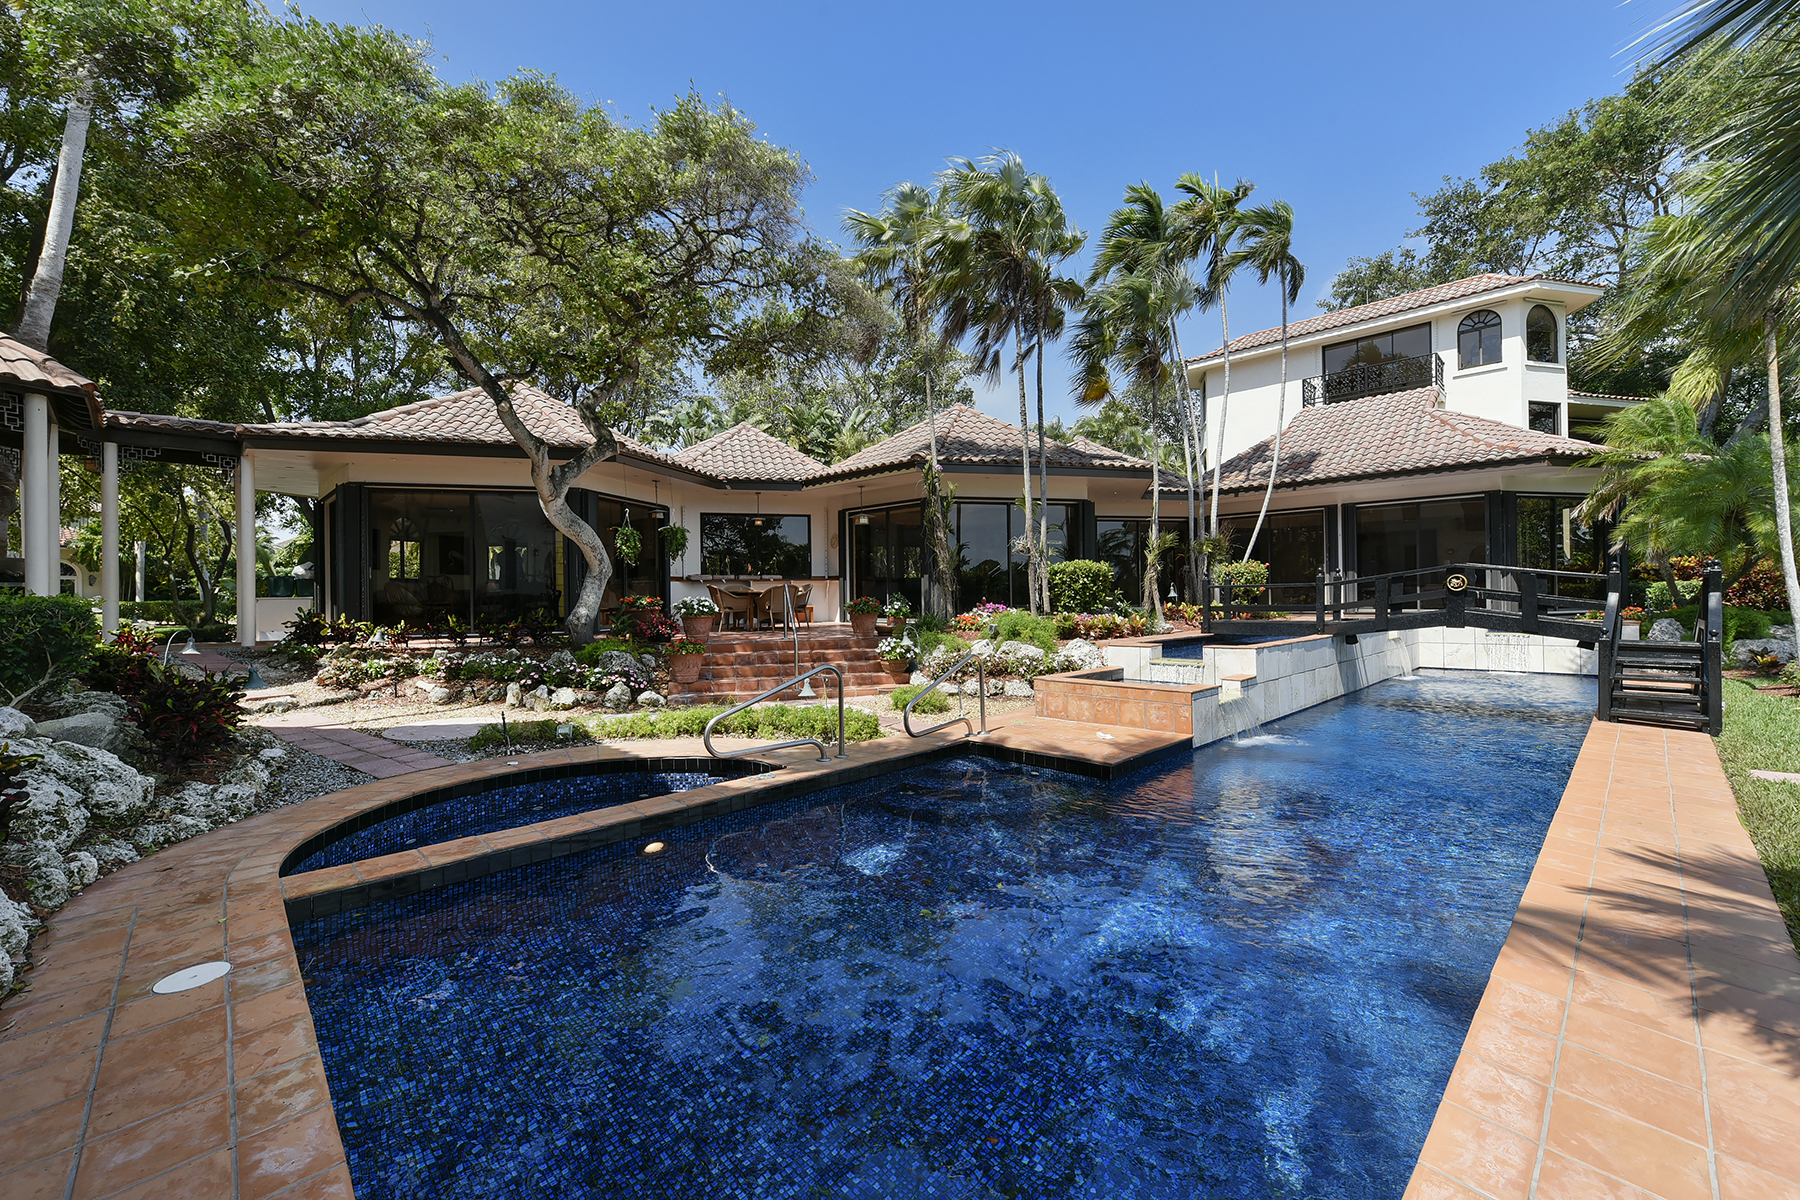 Maison unifamiliale pour l Vente à Architecturally Stunning Waterfront Home at Ocean Reef 44 Cardinal Lane Ocean Reef Community, Key Largo, Florida, 33037 États-Unis